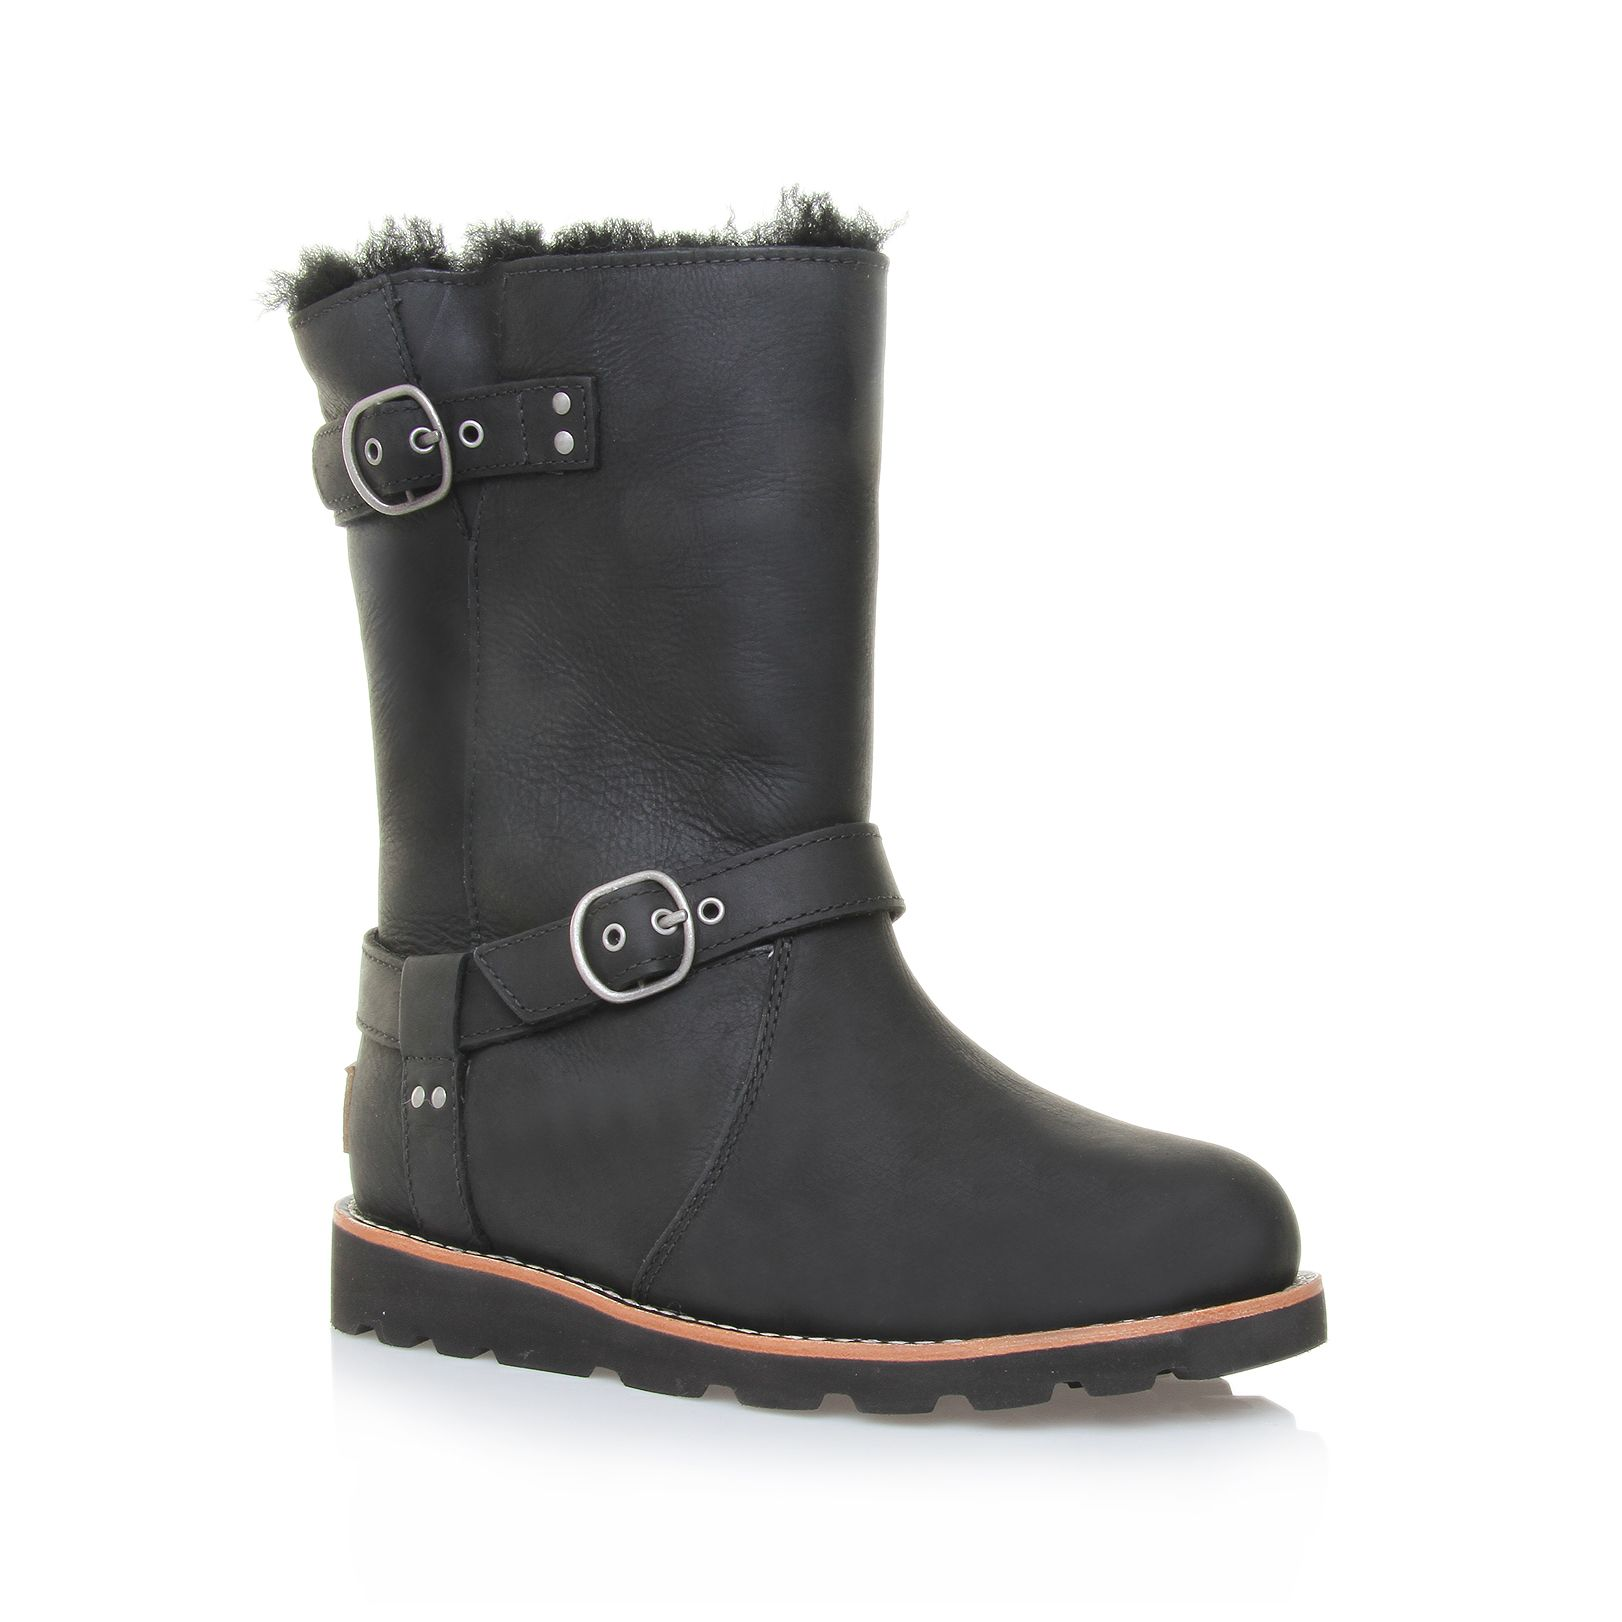 Ugg Noira Engineer Boots In Black | Lyst